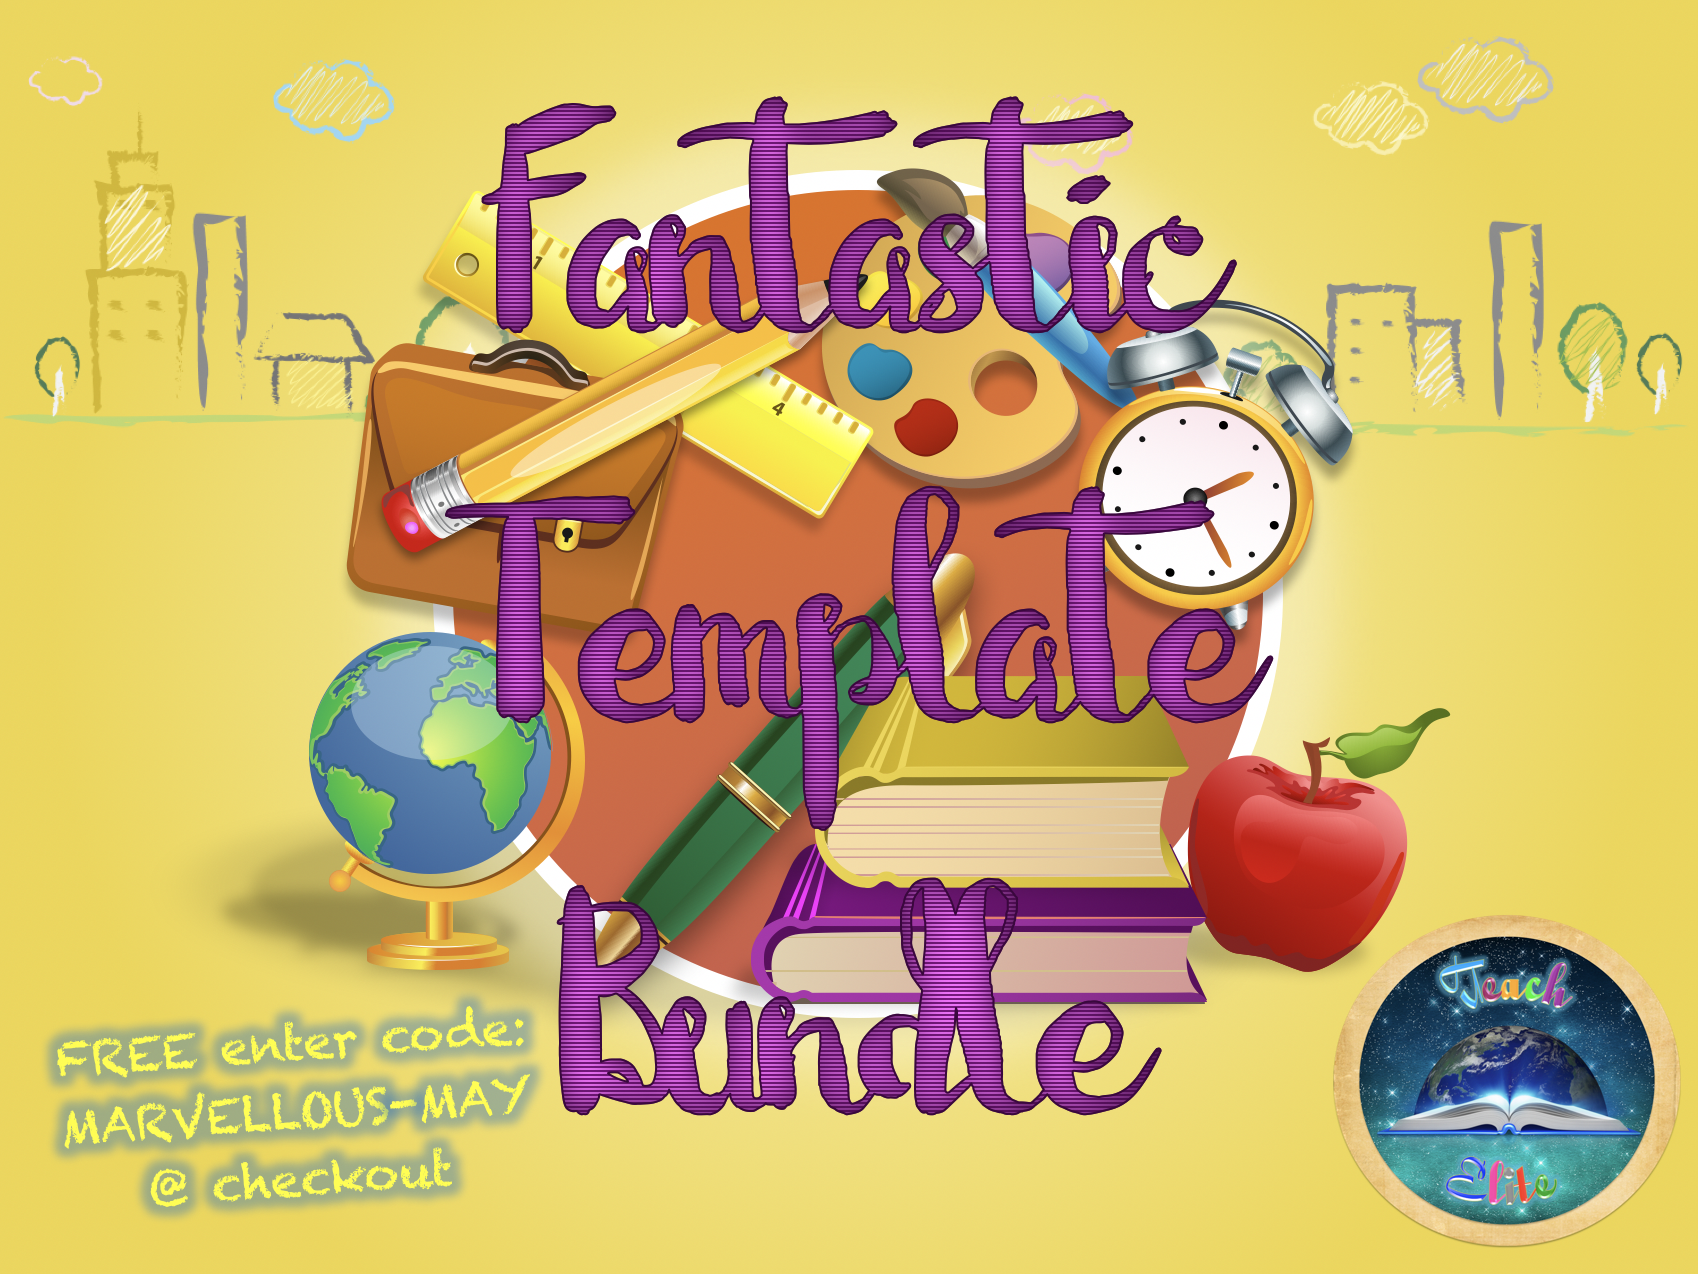 Fantastic Template Bundle. FREE with code: MARVELLOUS-MAY @ checkout